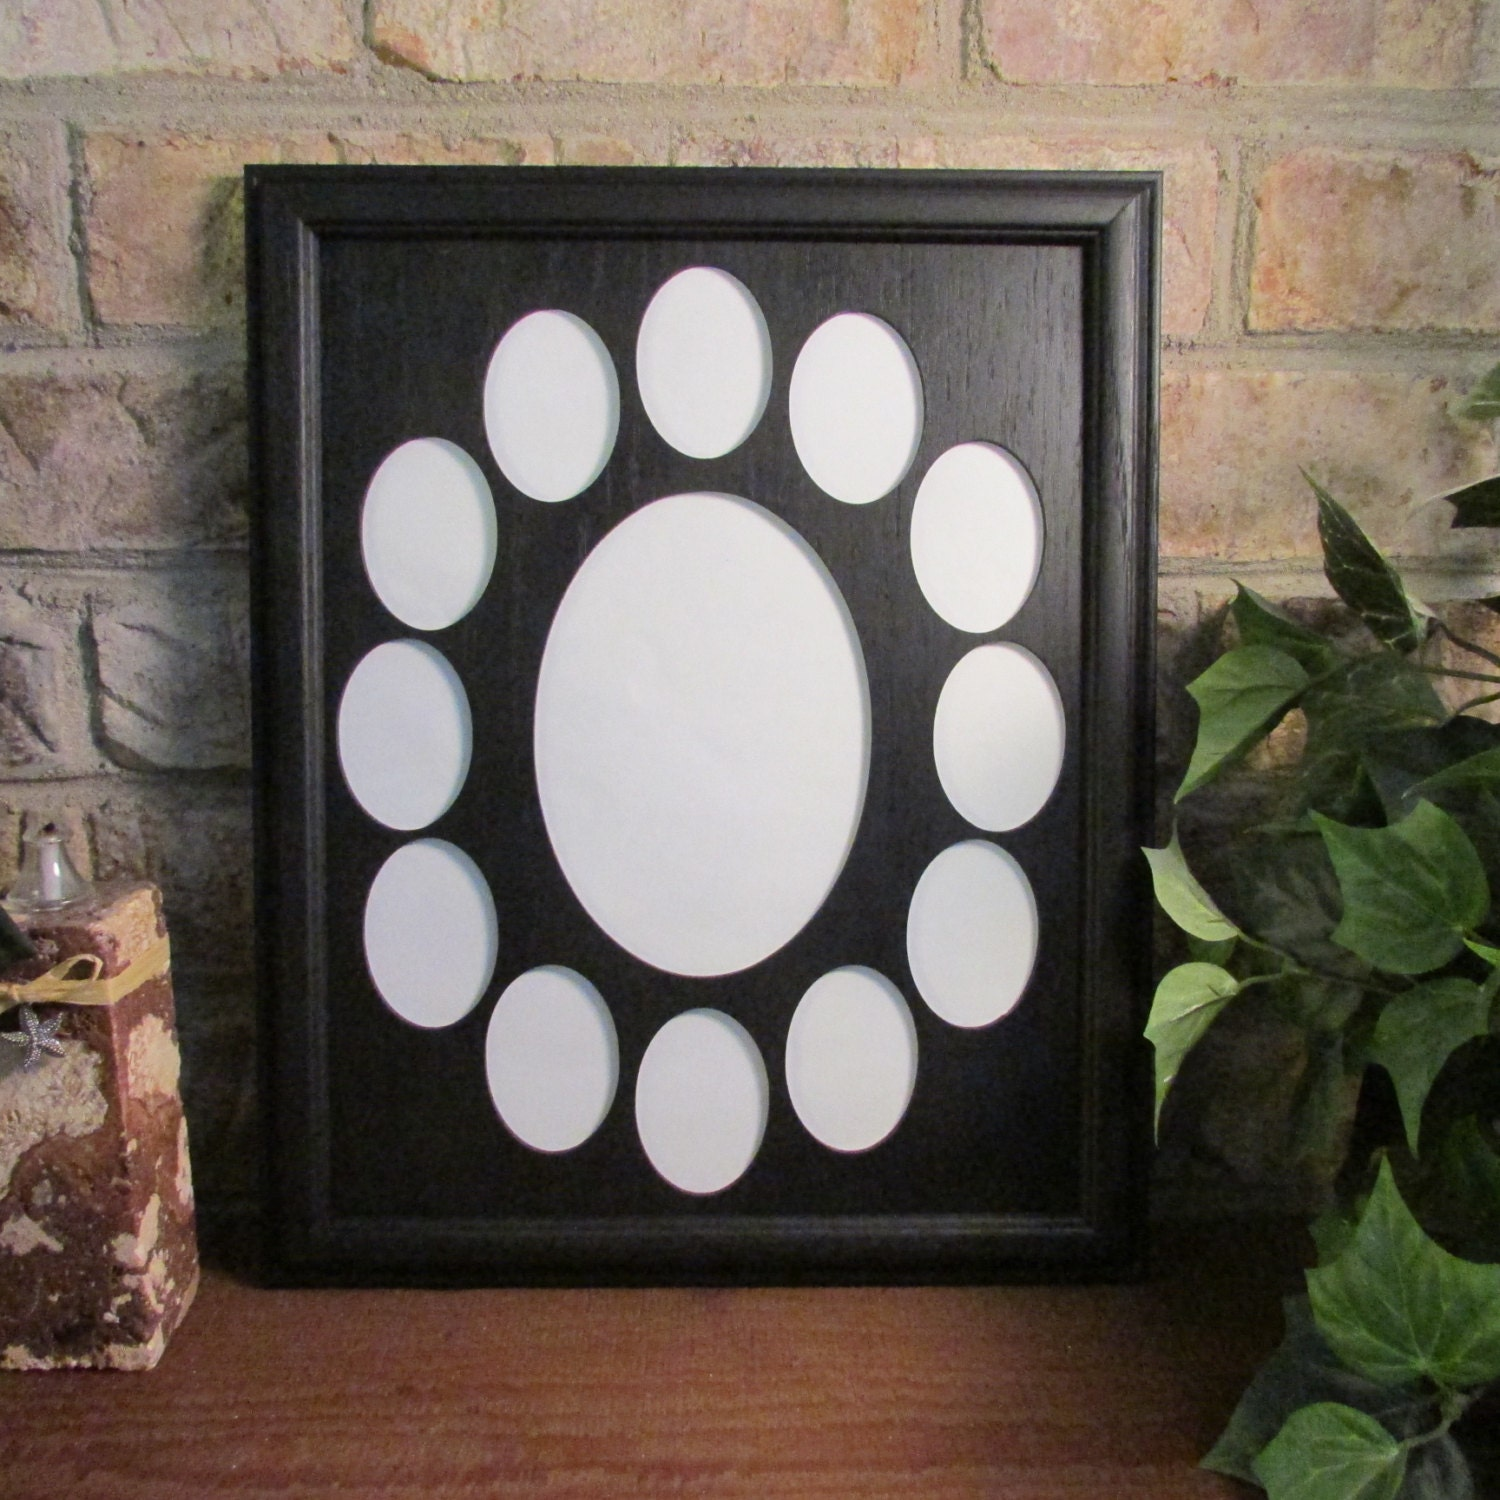 school years frame collage k 12 graduation oval black picture frame black matte 11x14